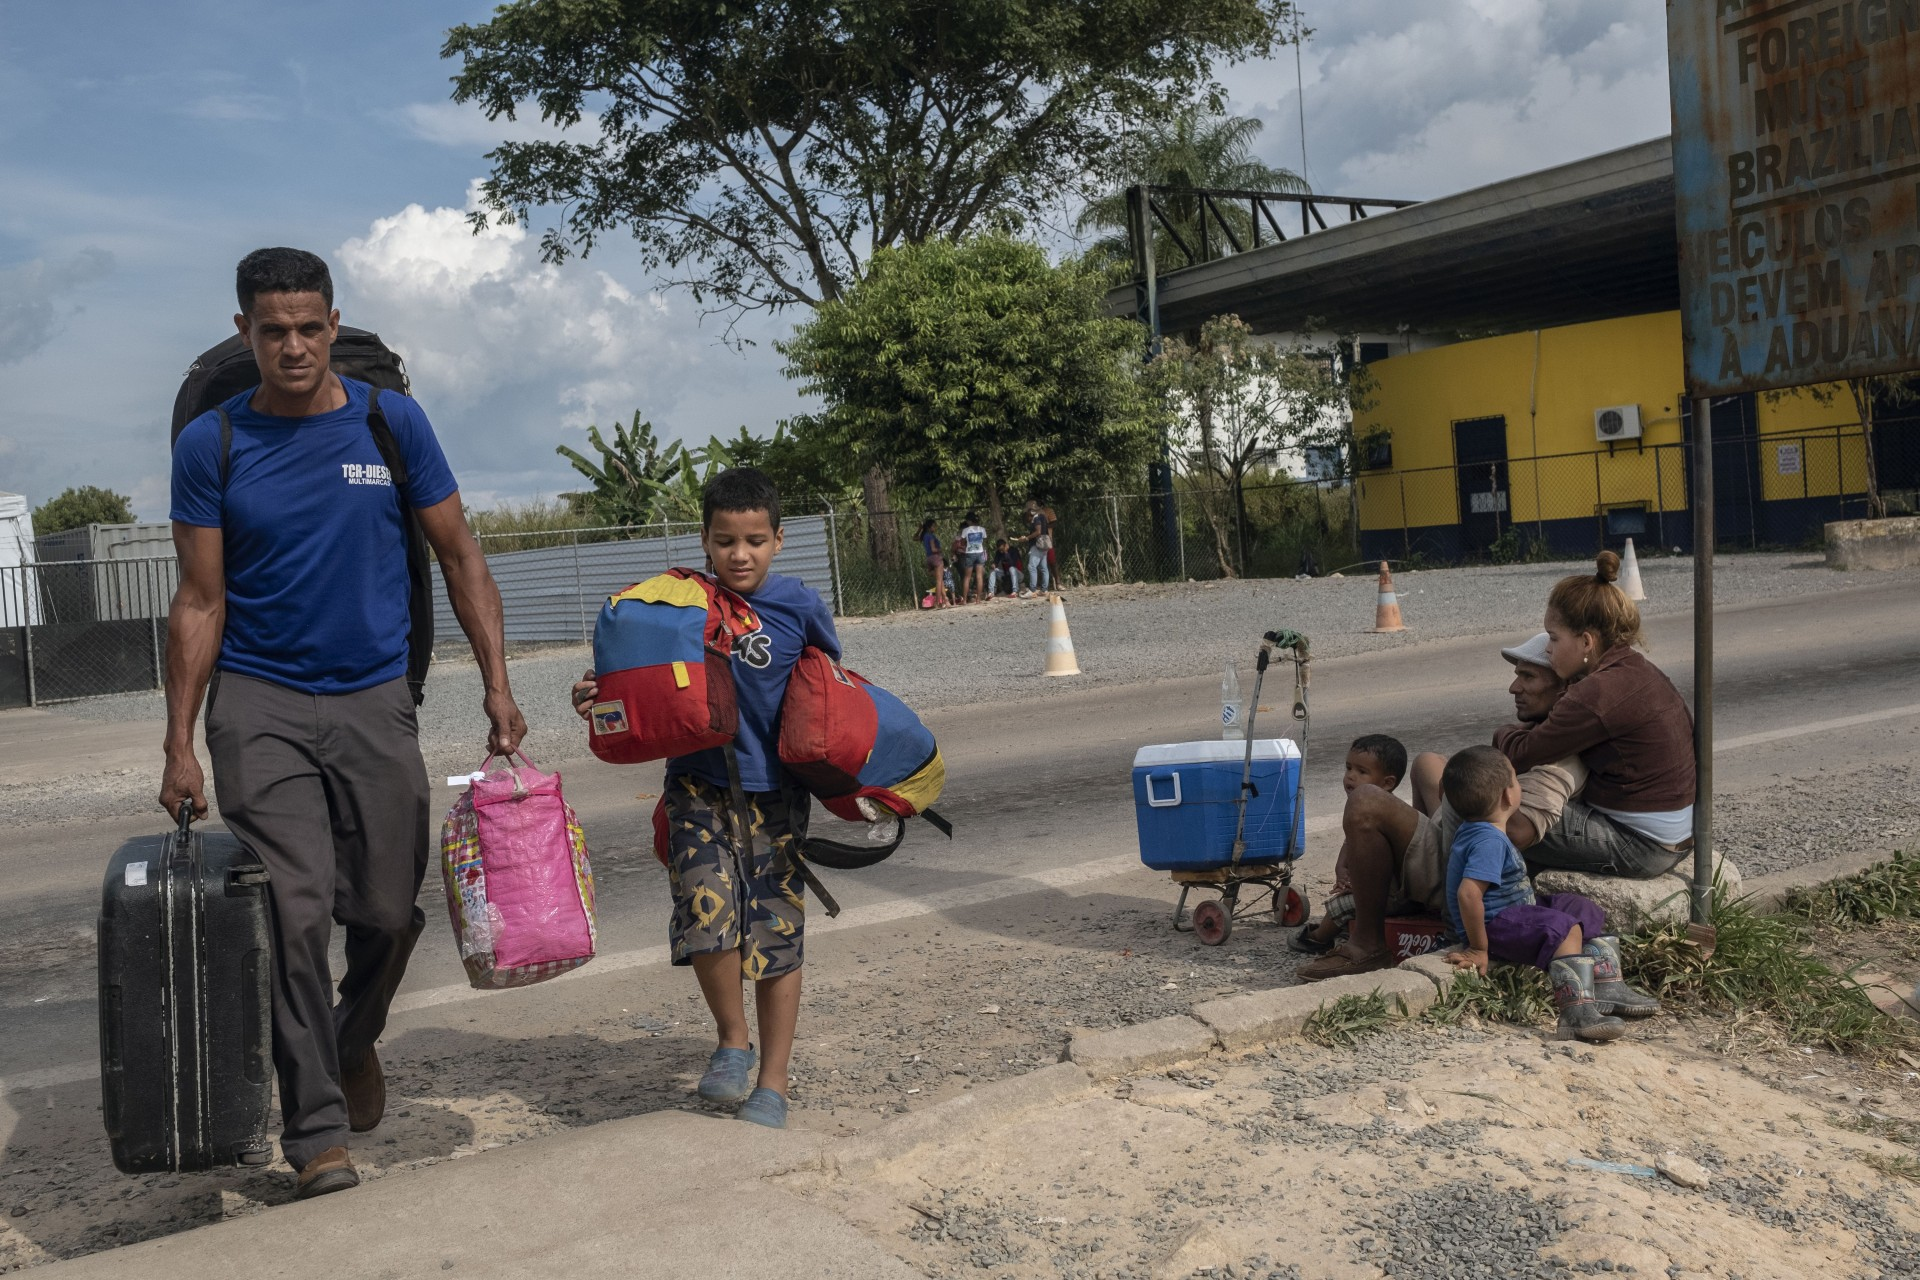 154.000 Venezuelan refugees have poured into Roraima's border since 2015, on the North of Brazil. For those fleeing, Boa Vista - the poorest state capital in the country — is the first big city on their perilous travel.